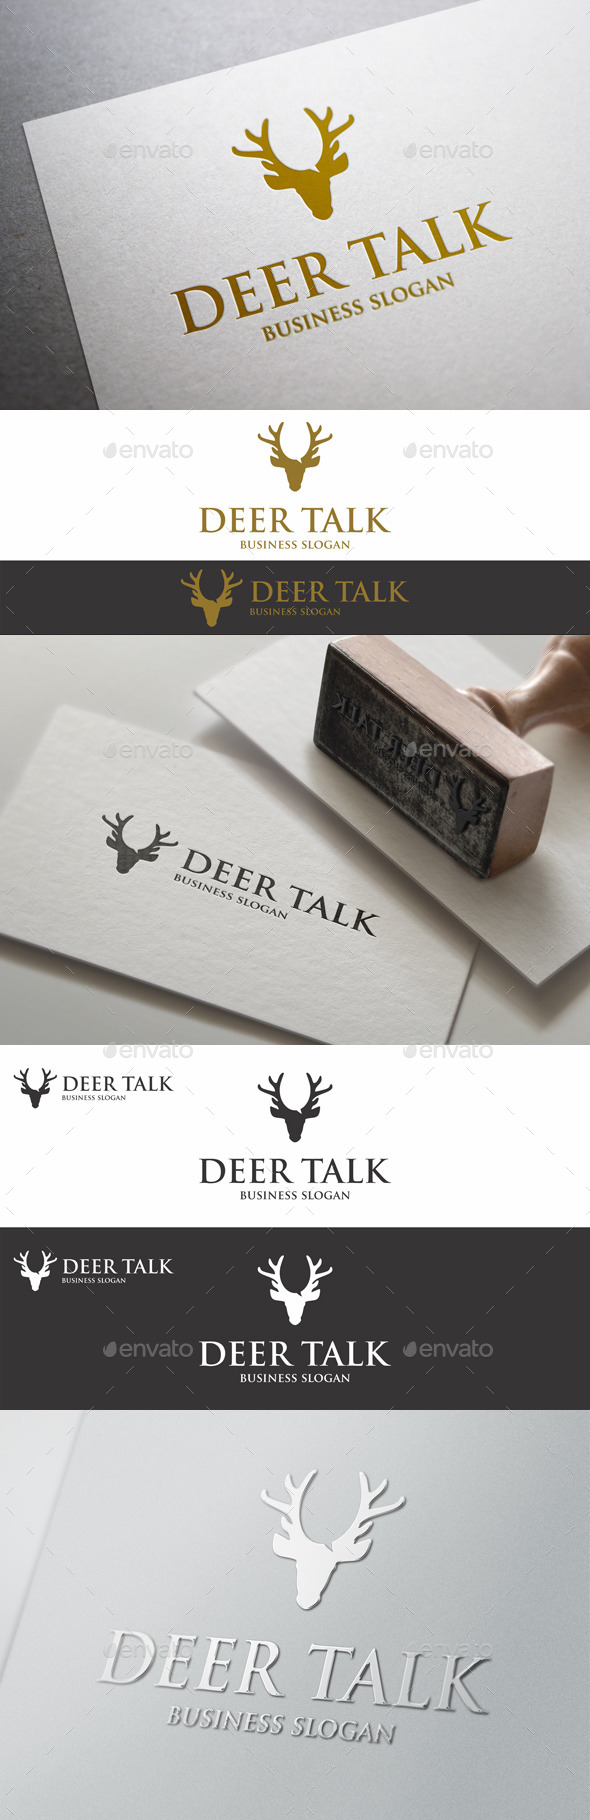 Deer Talk Logo Template